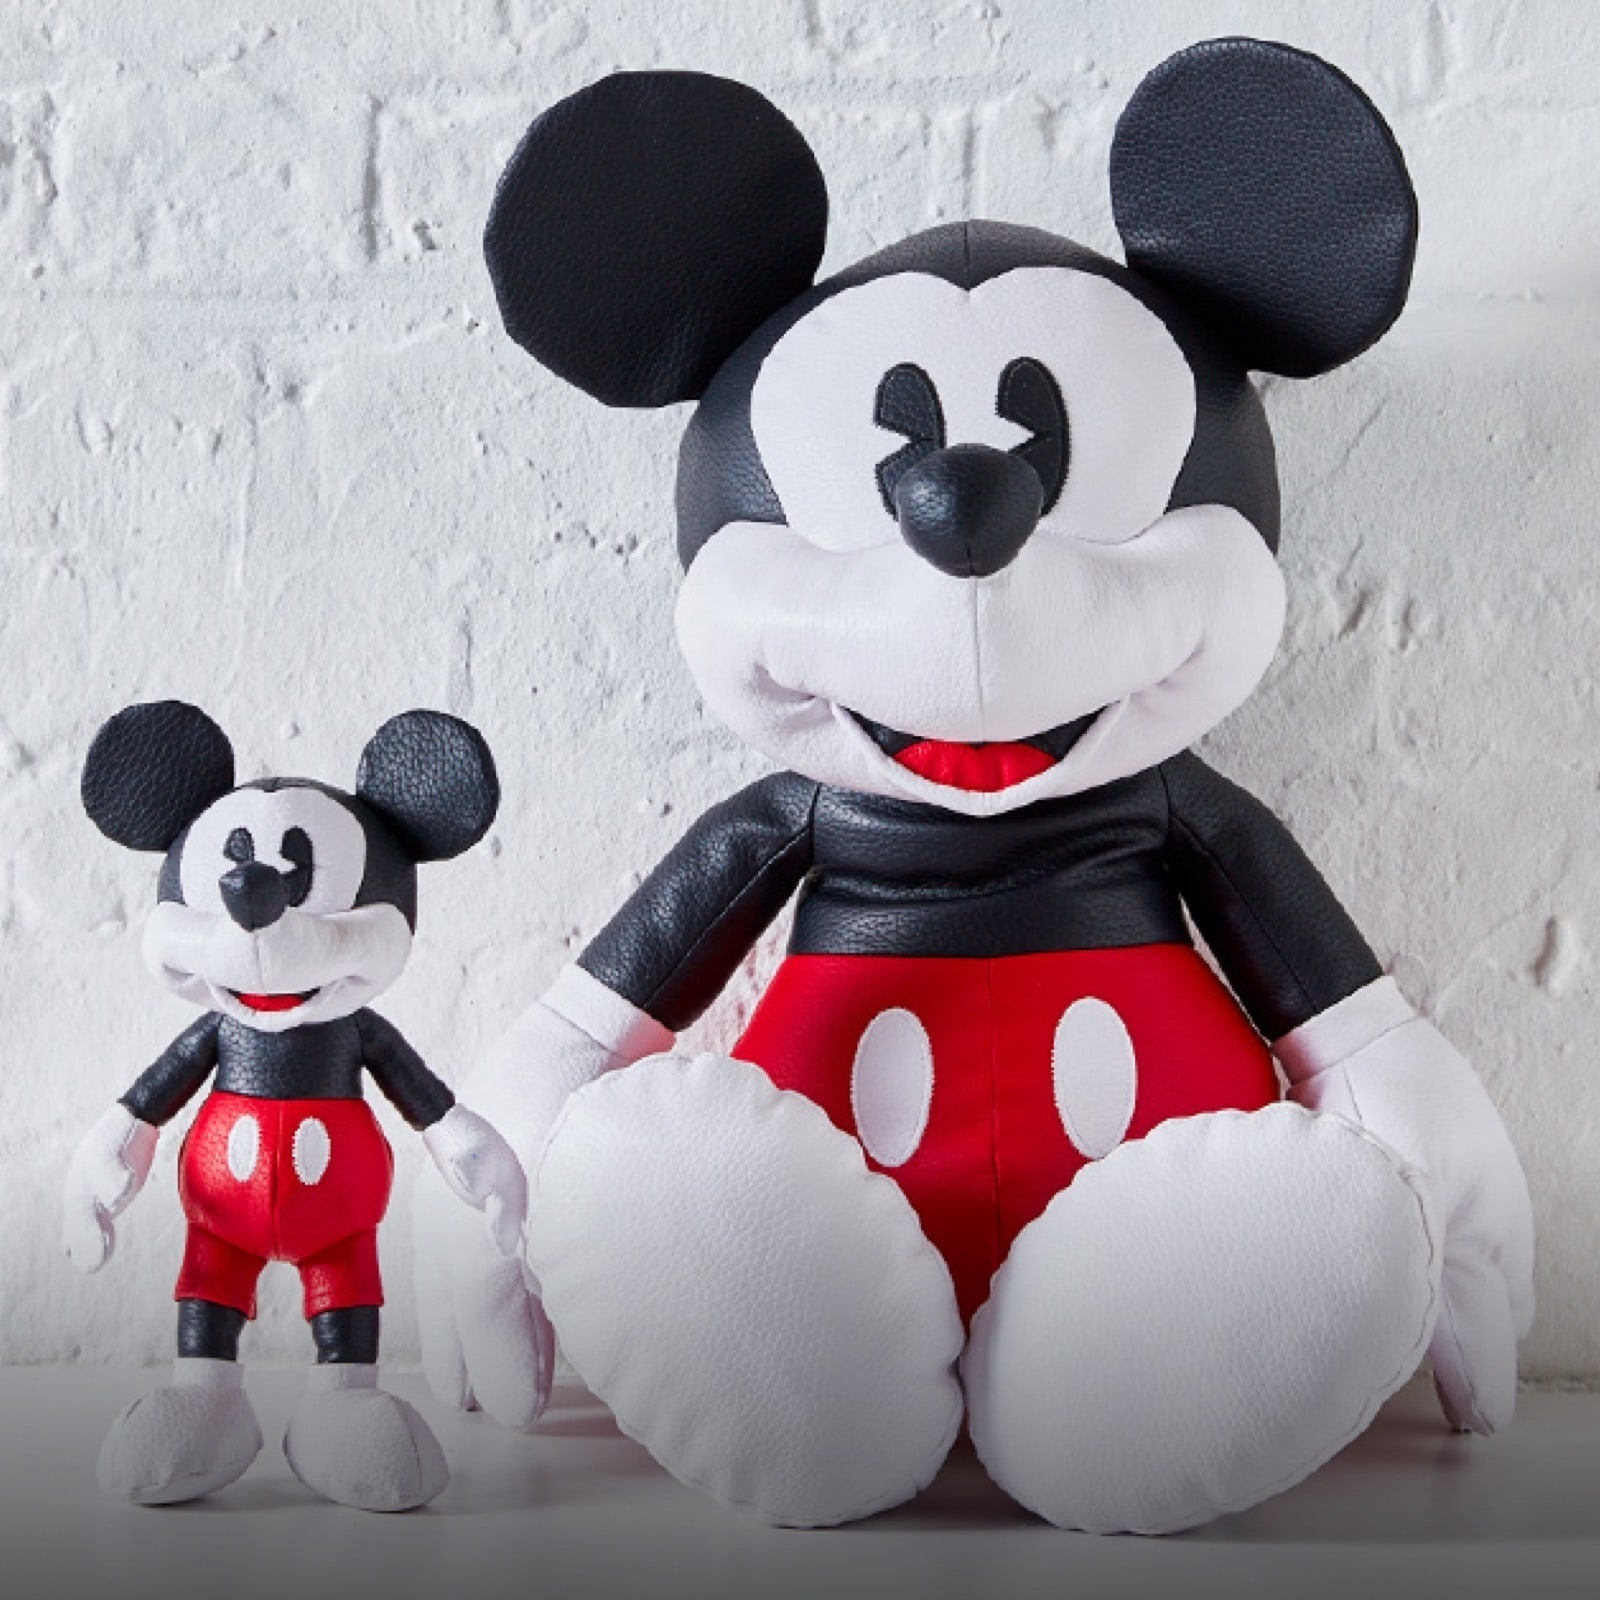 Large and small Mickey Mouse plush